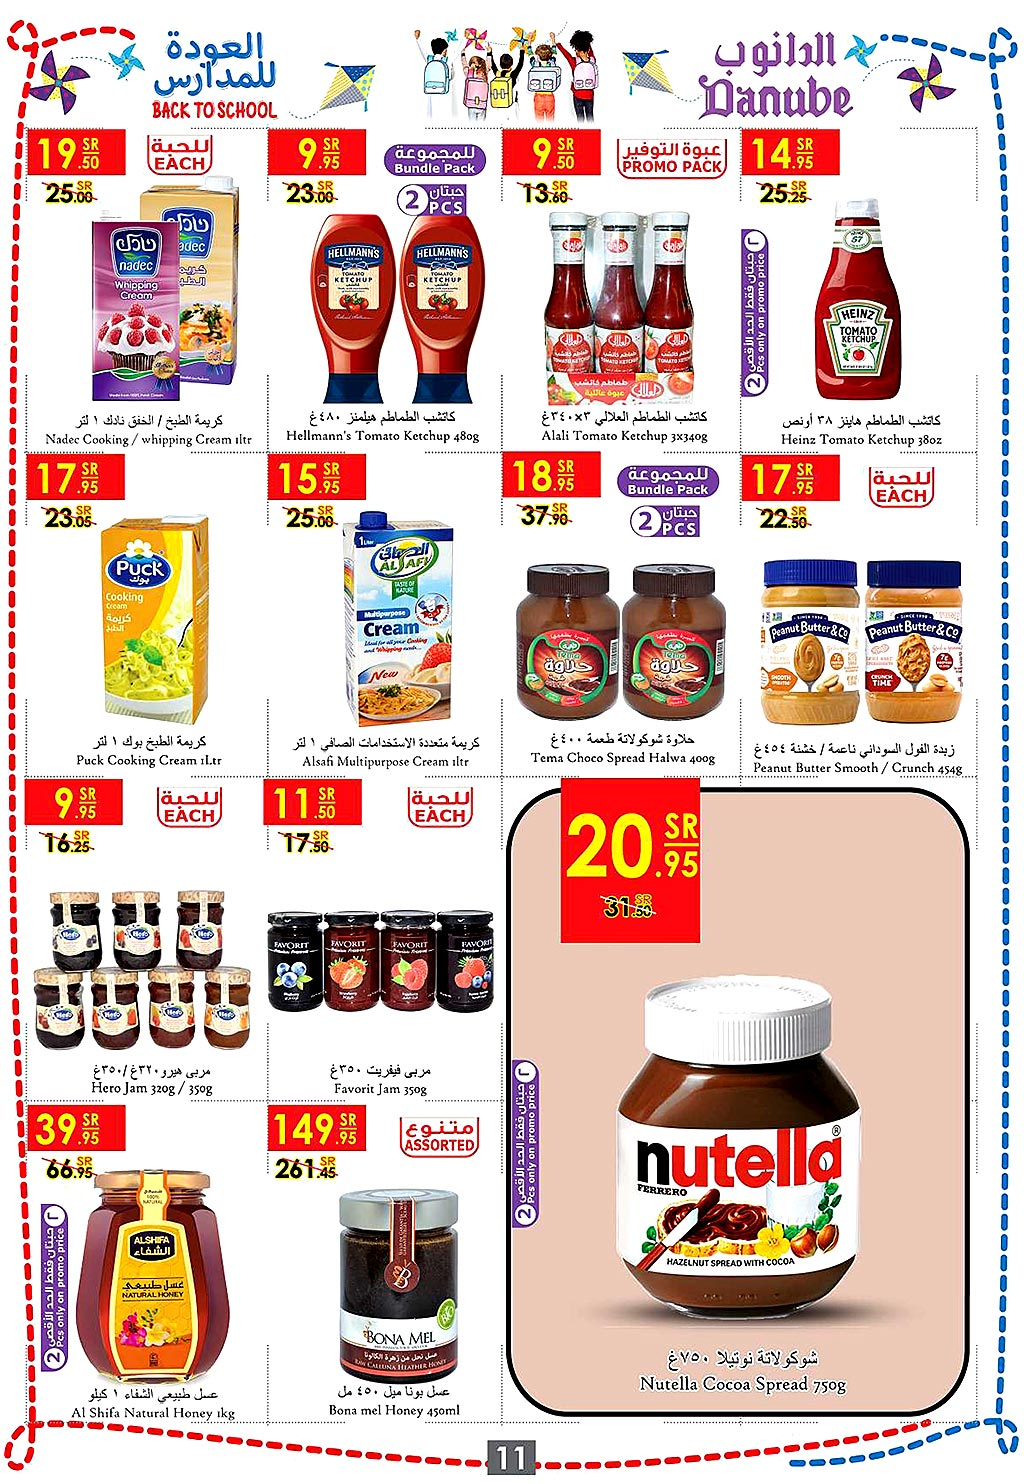 danube offers from 7aug to 22aug 2019 page number 10 عروض الدانوب من 7 أغسطس حتى 22 أغسطس 2019 صفحة رقم 10